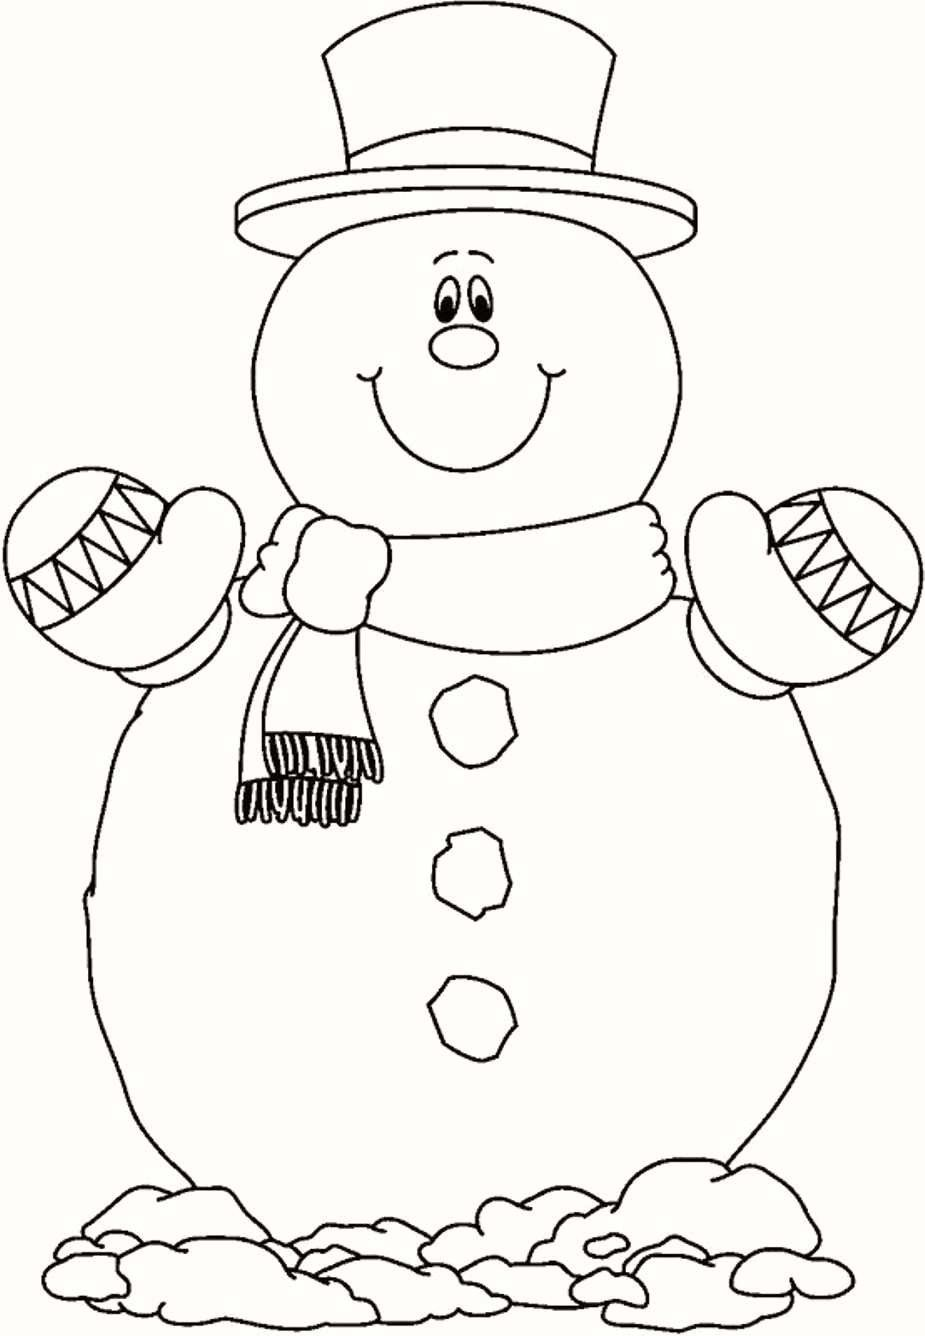 24 Wonderful Picture Of Frosty The Snowman Coloring Pages